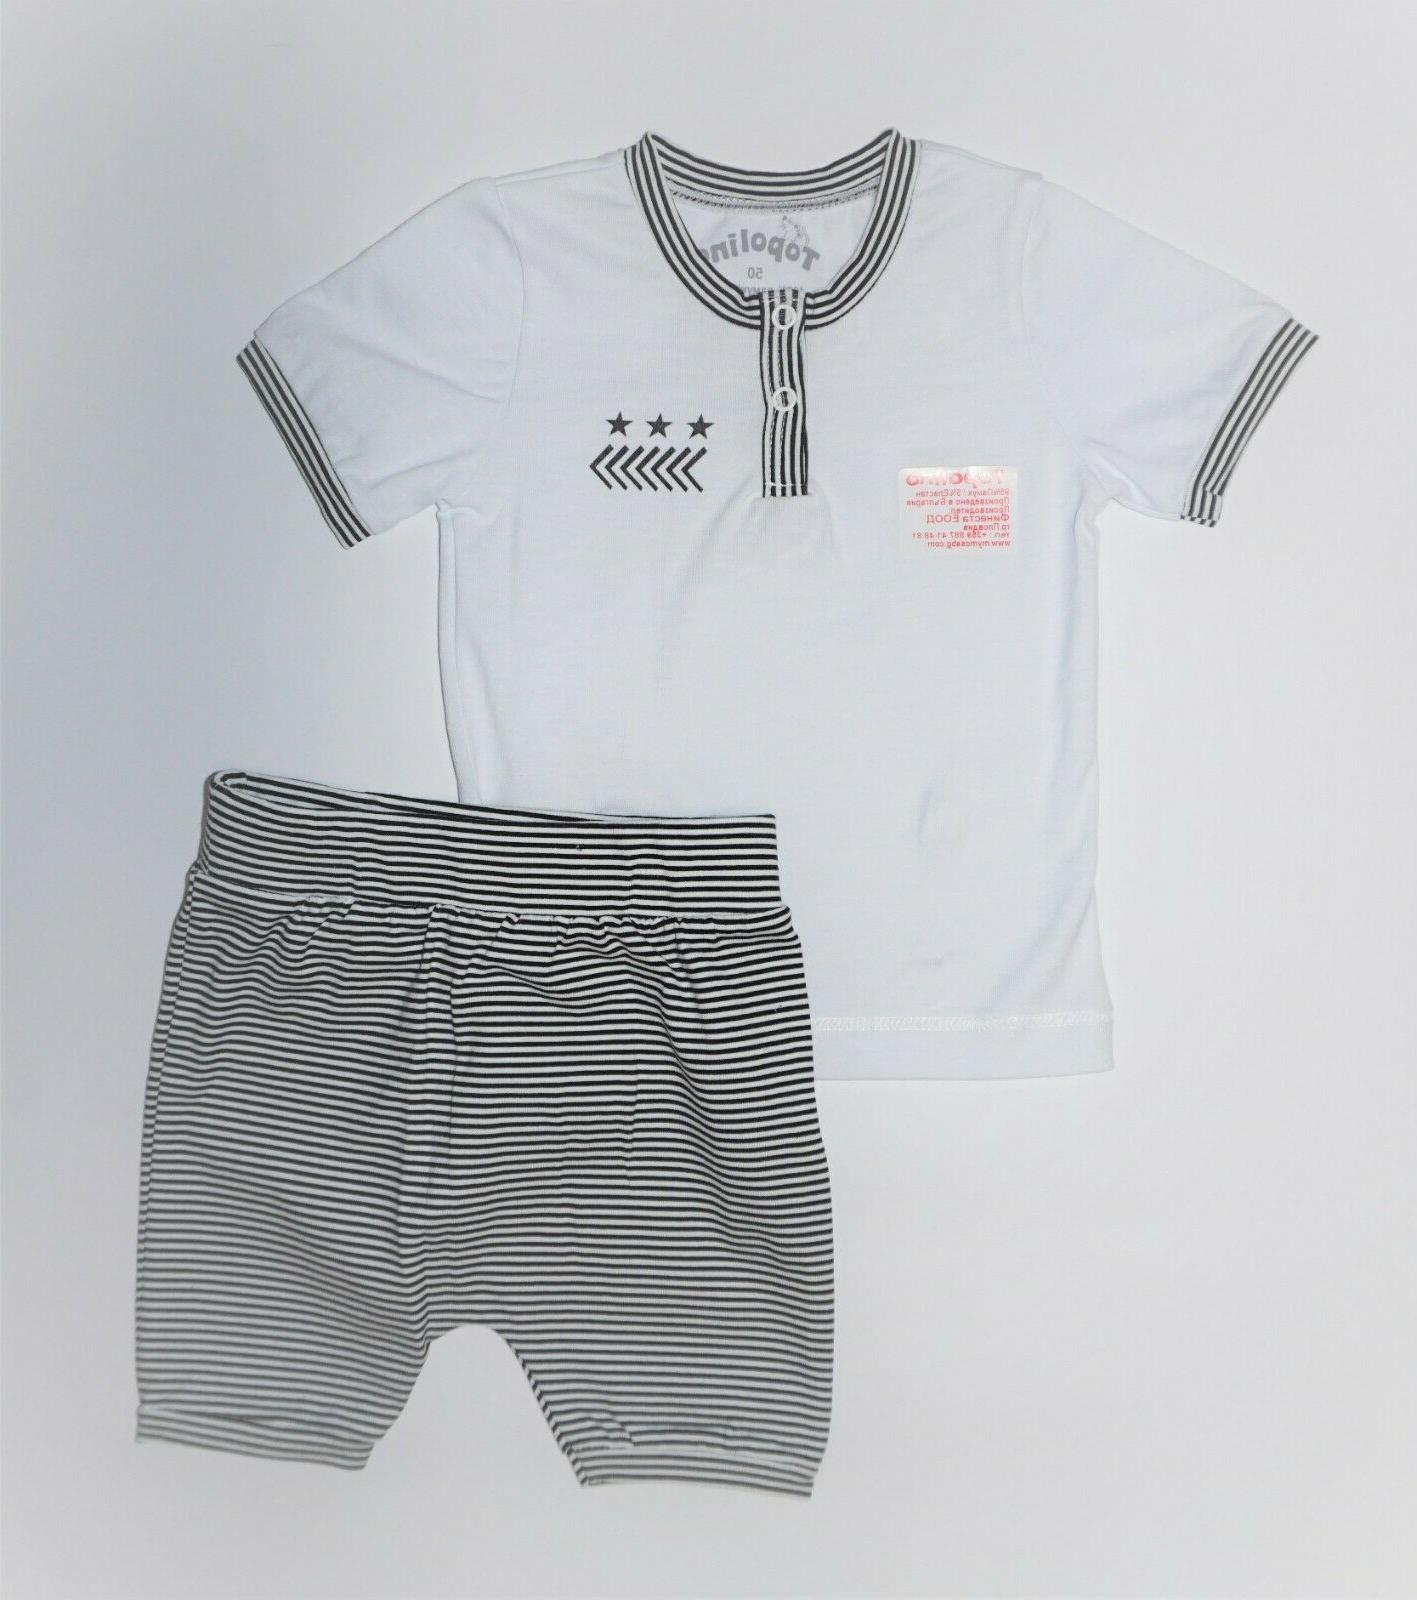 NWT, 2 and shorts,95% Cotton, Lycra